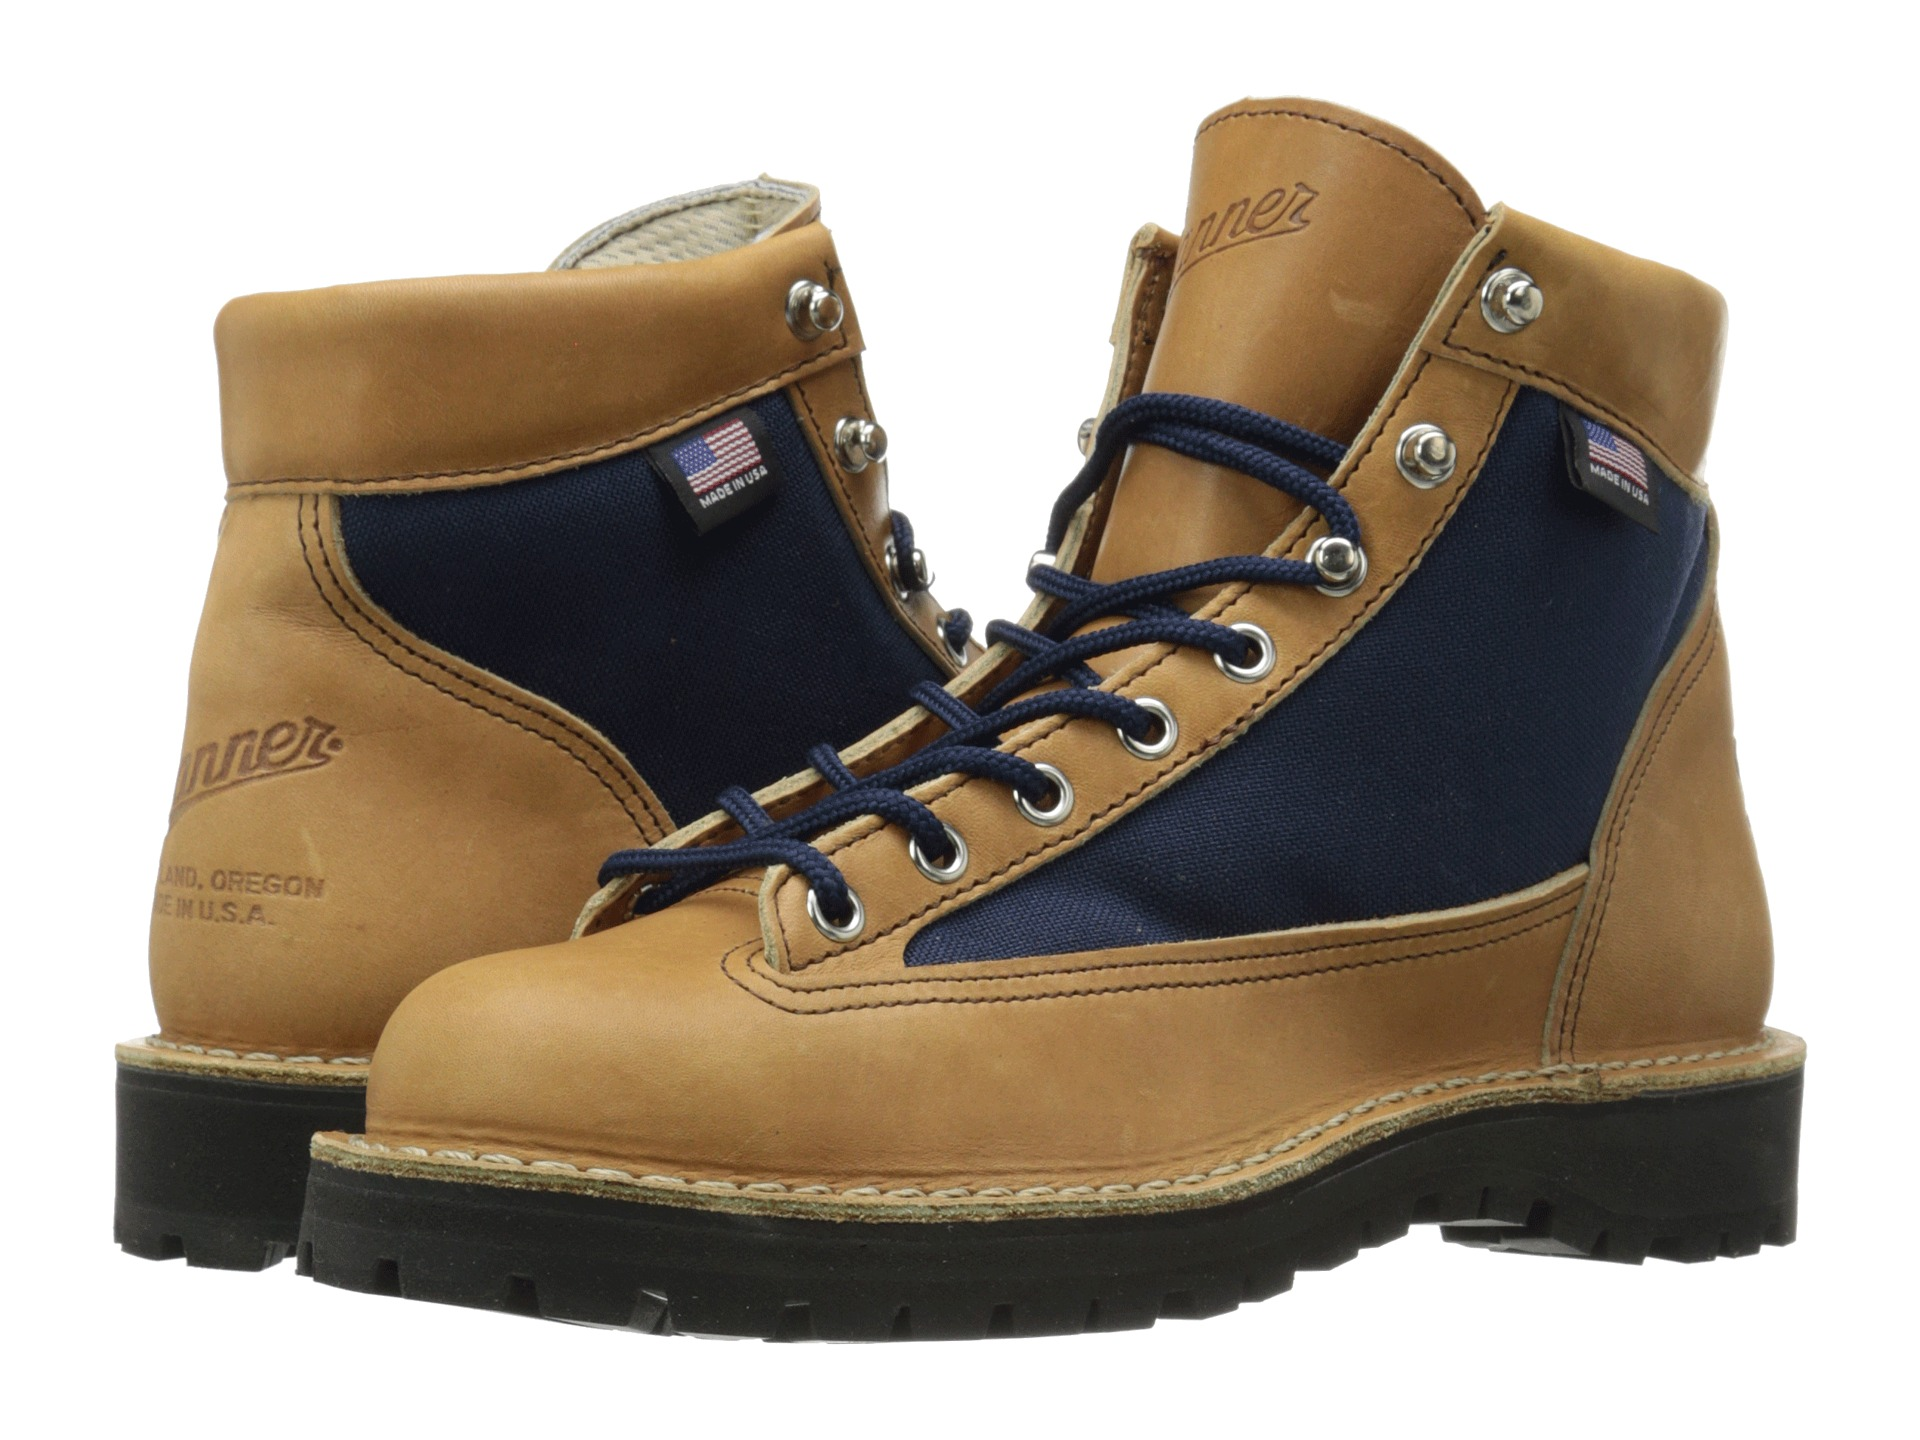 Danner, Boots, Women | Shipped Free at Zappos